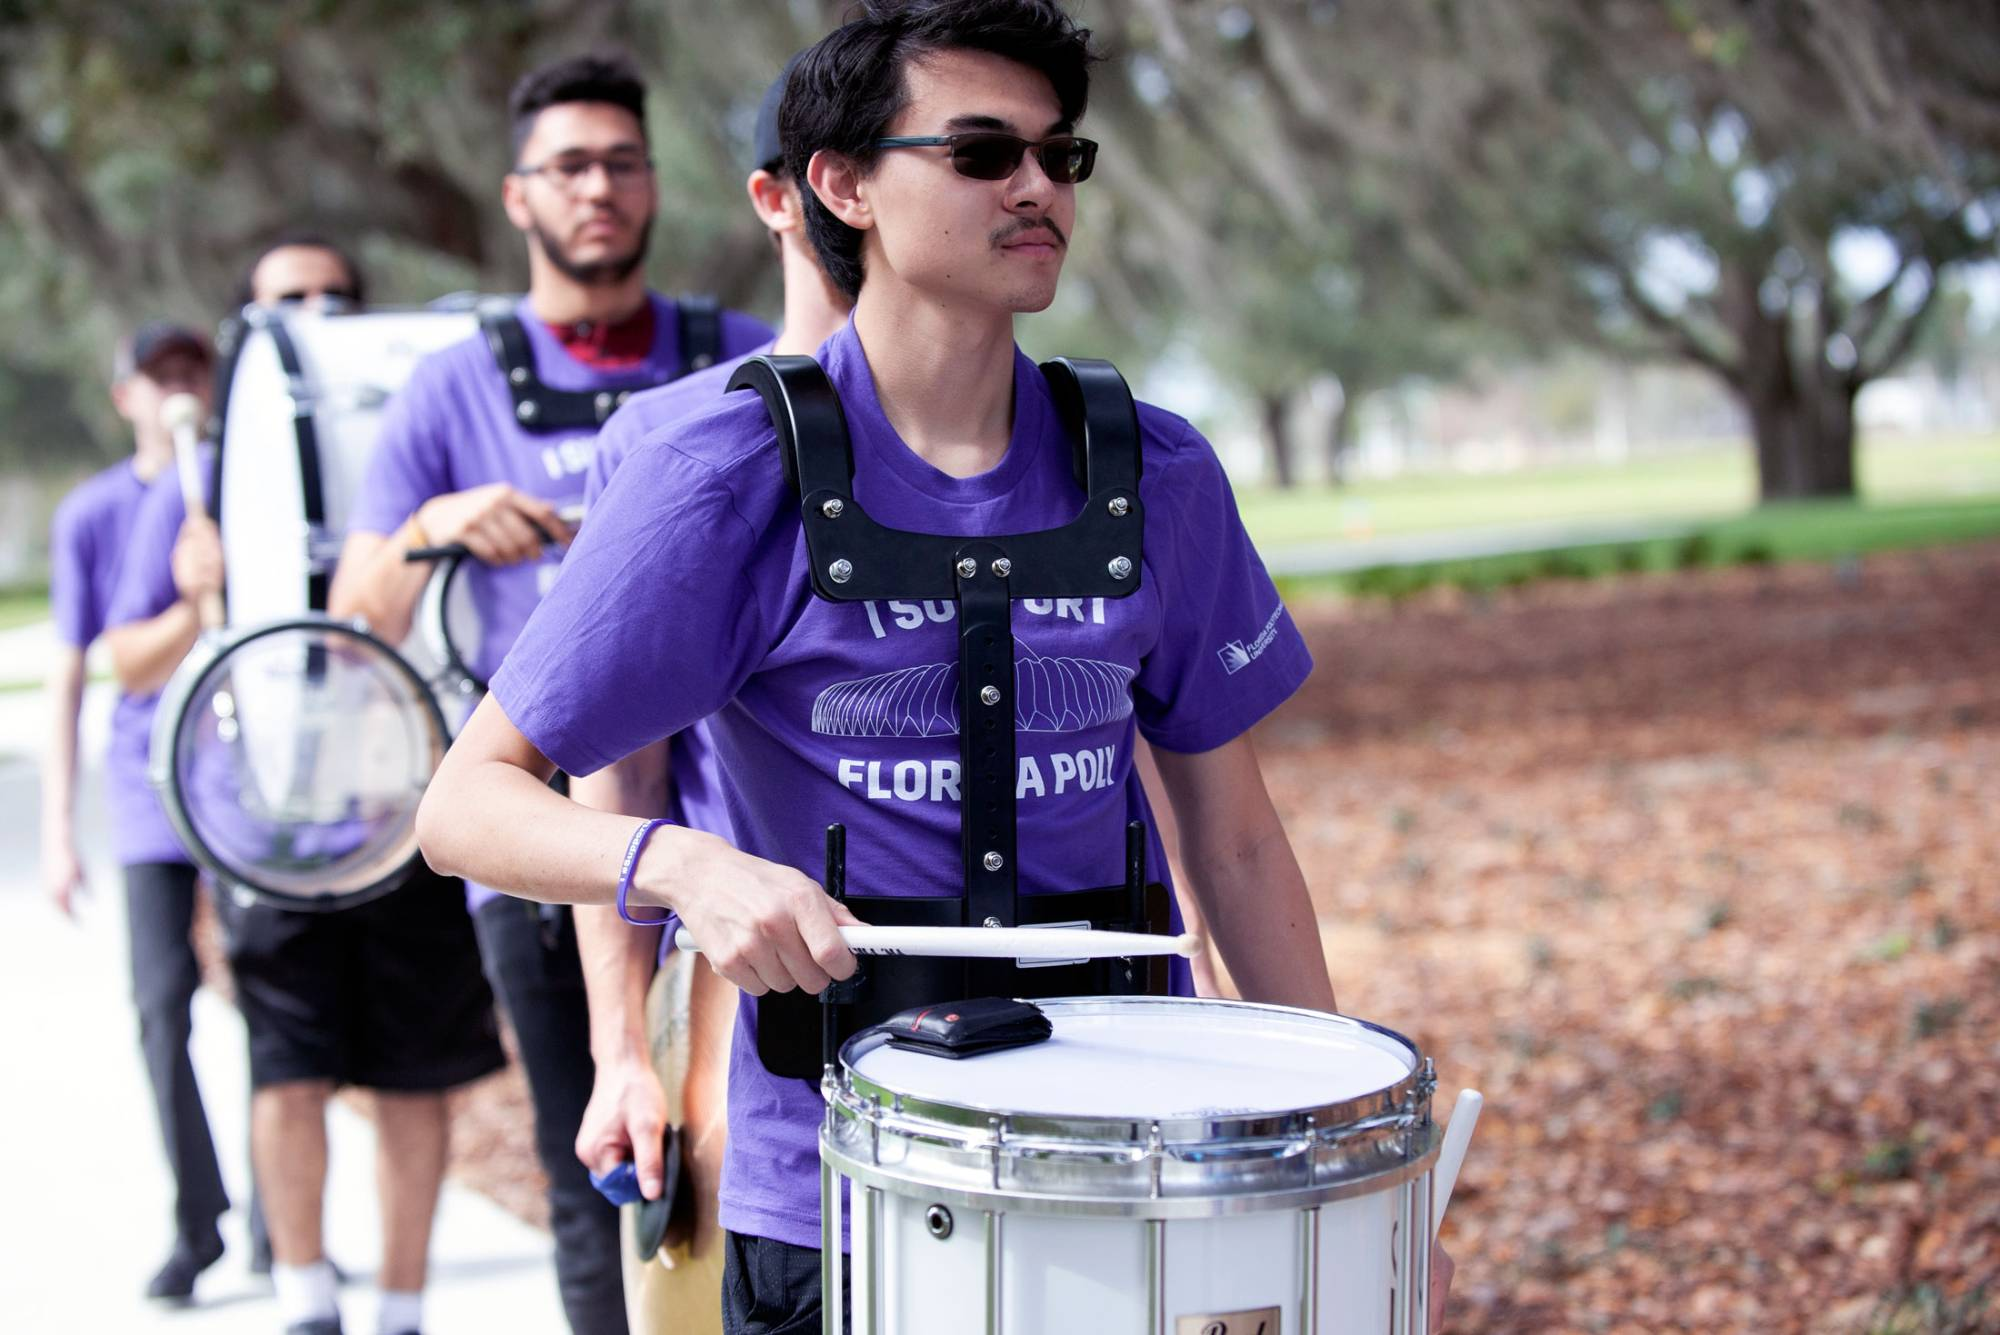 Florida Poly's new Scatter Band prepares to soar